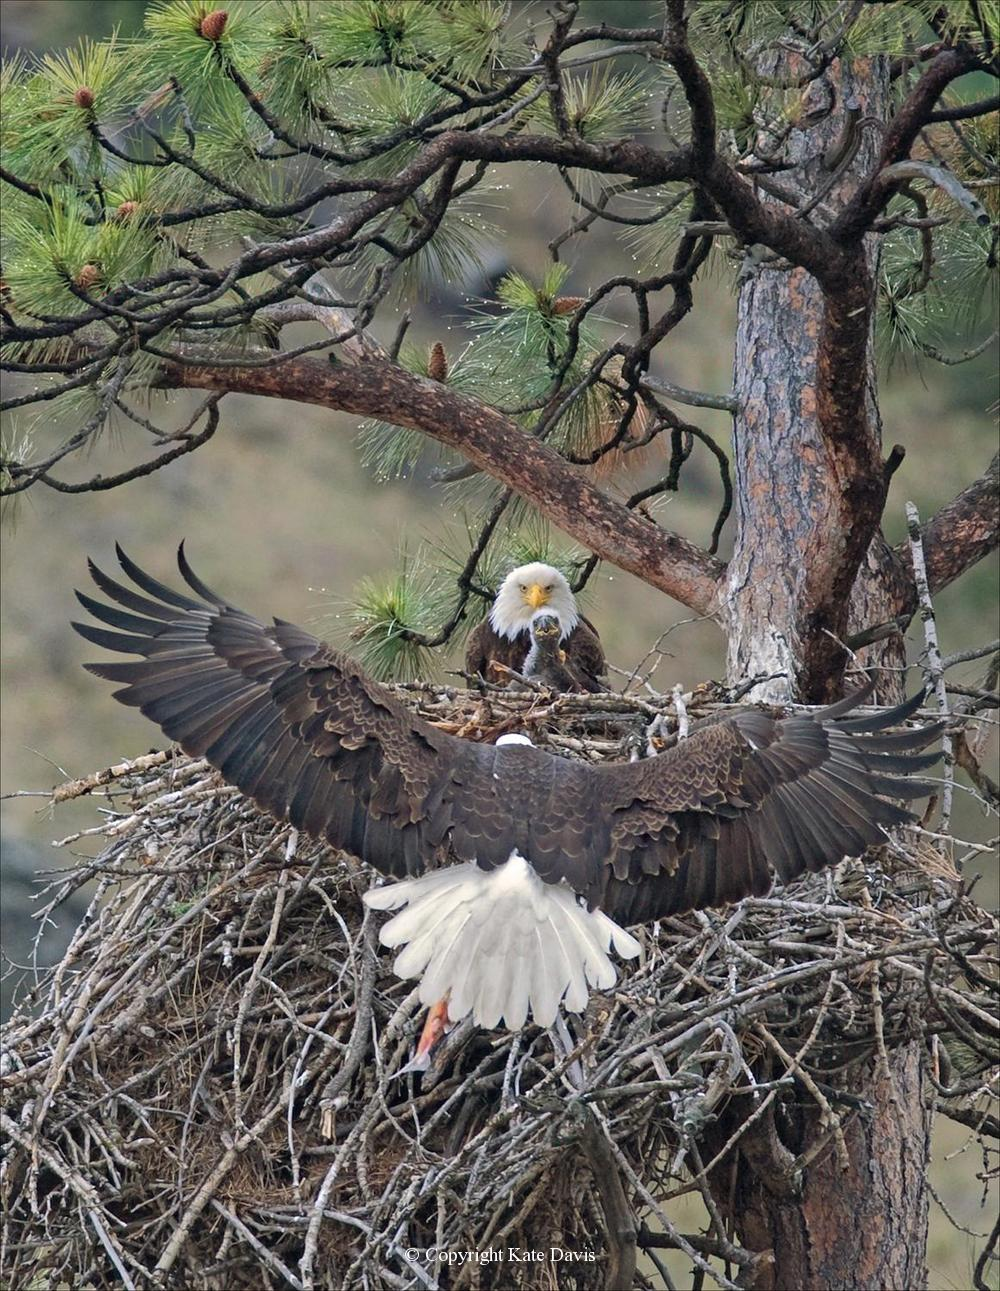 American Bald Eagle - Nest 2011 - Golden Eagle - Bald Eagles 2011 and cover of my eagle book, first day and four months at the nest, four chicks fledged